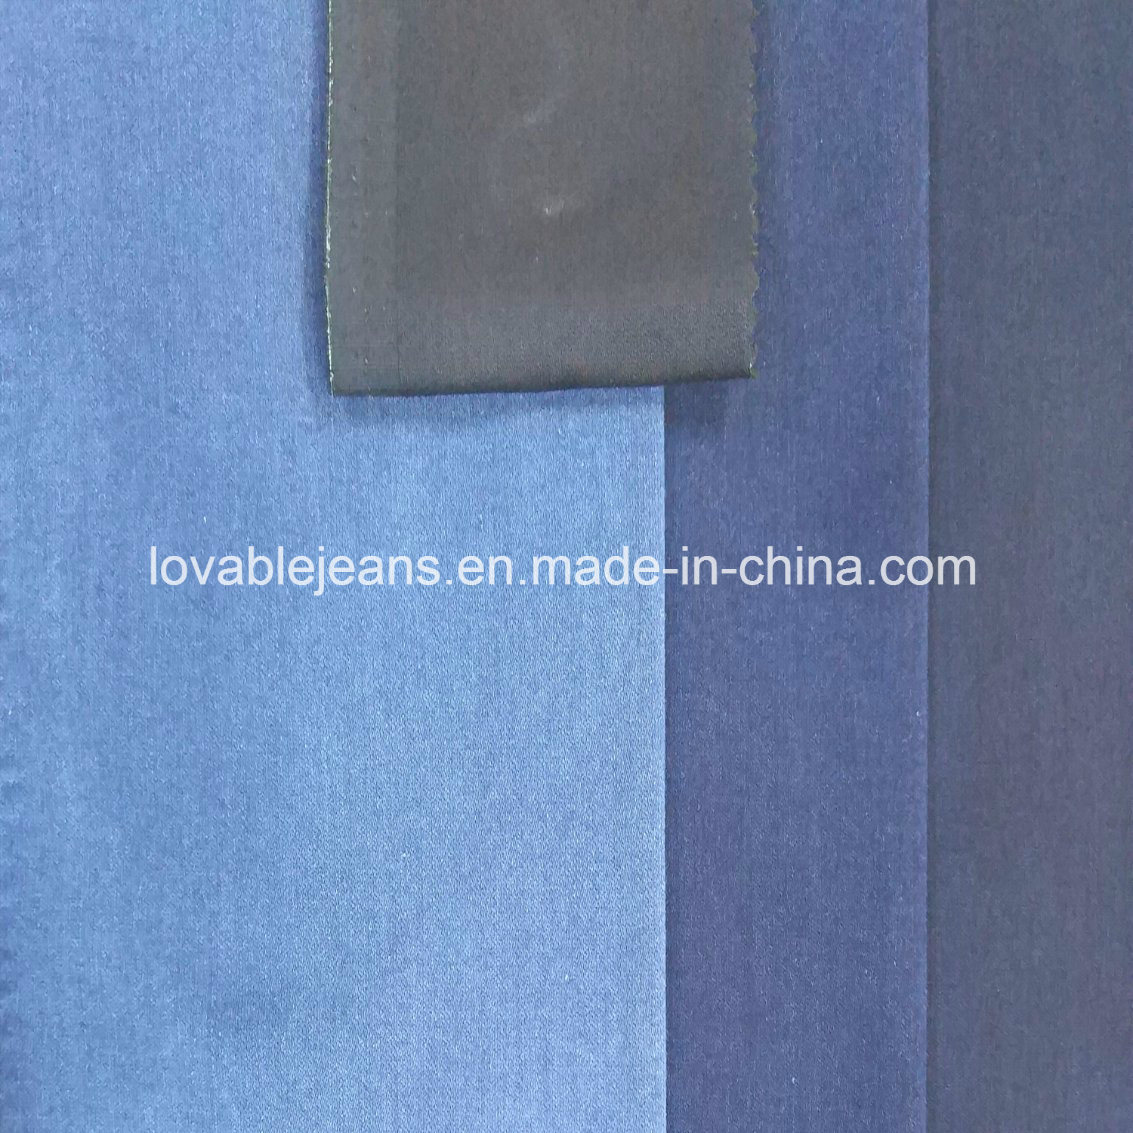 Quality Denim Fabric for Jeans (KL106)